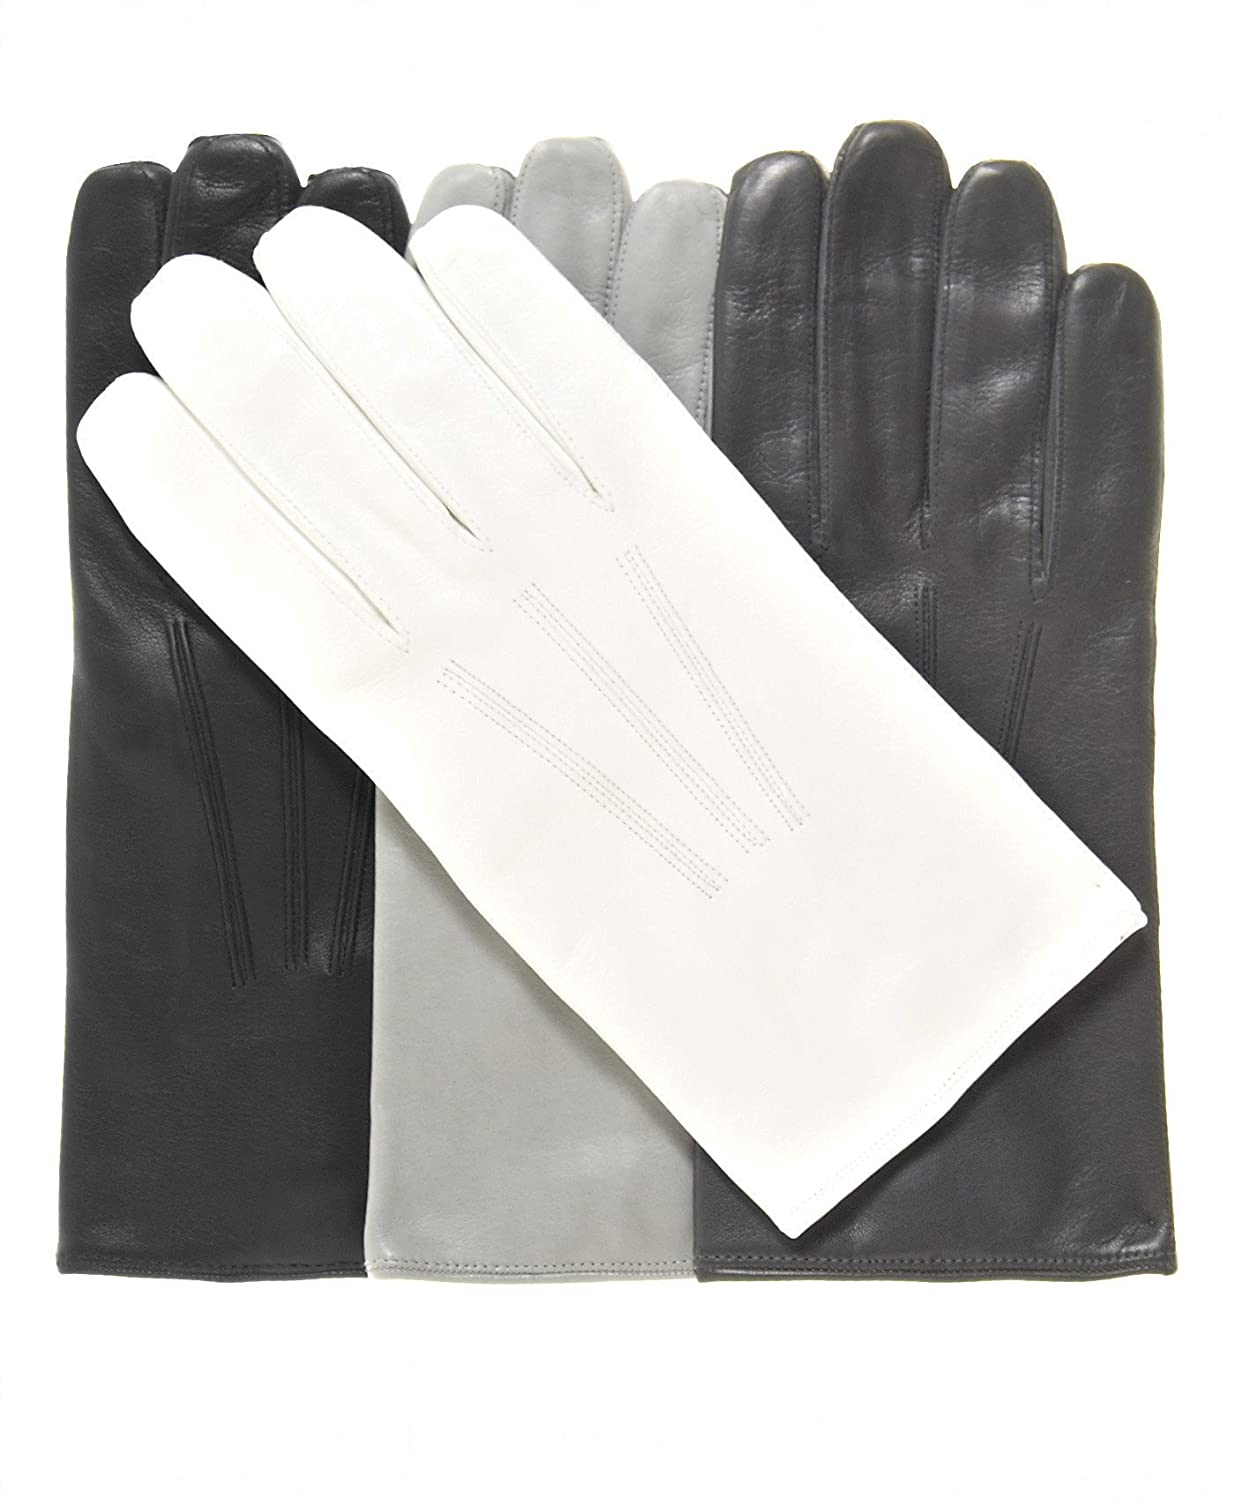 Edwardian Men's Accessories Mens Lined Lambskin Leather Gloves with Wrist Snap $99.95 AT vintagedancer.com